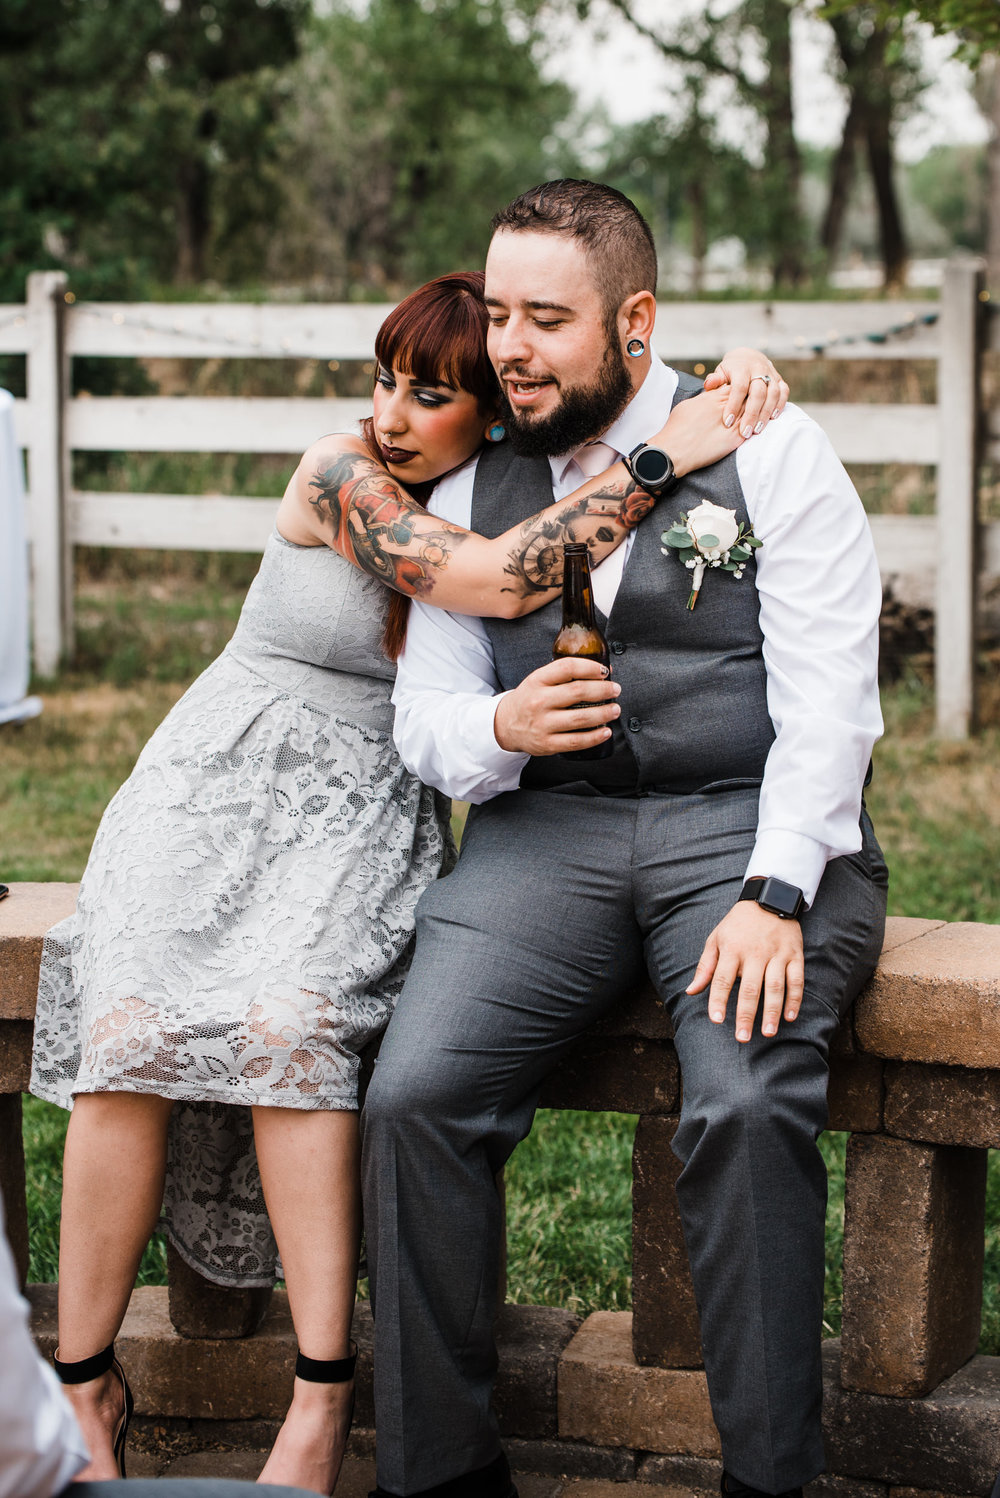 Guests partying at spirited, genuine, colorful Colorado mountain wedding photographer